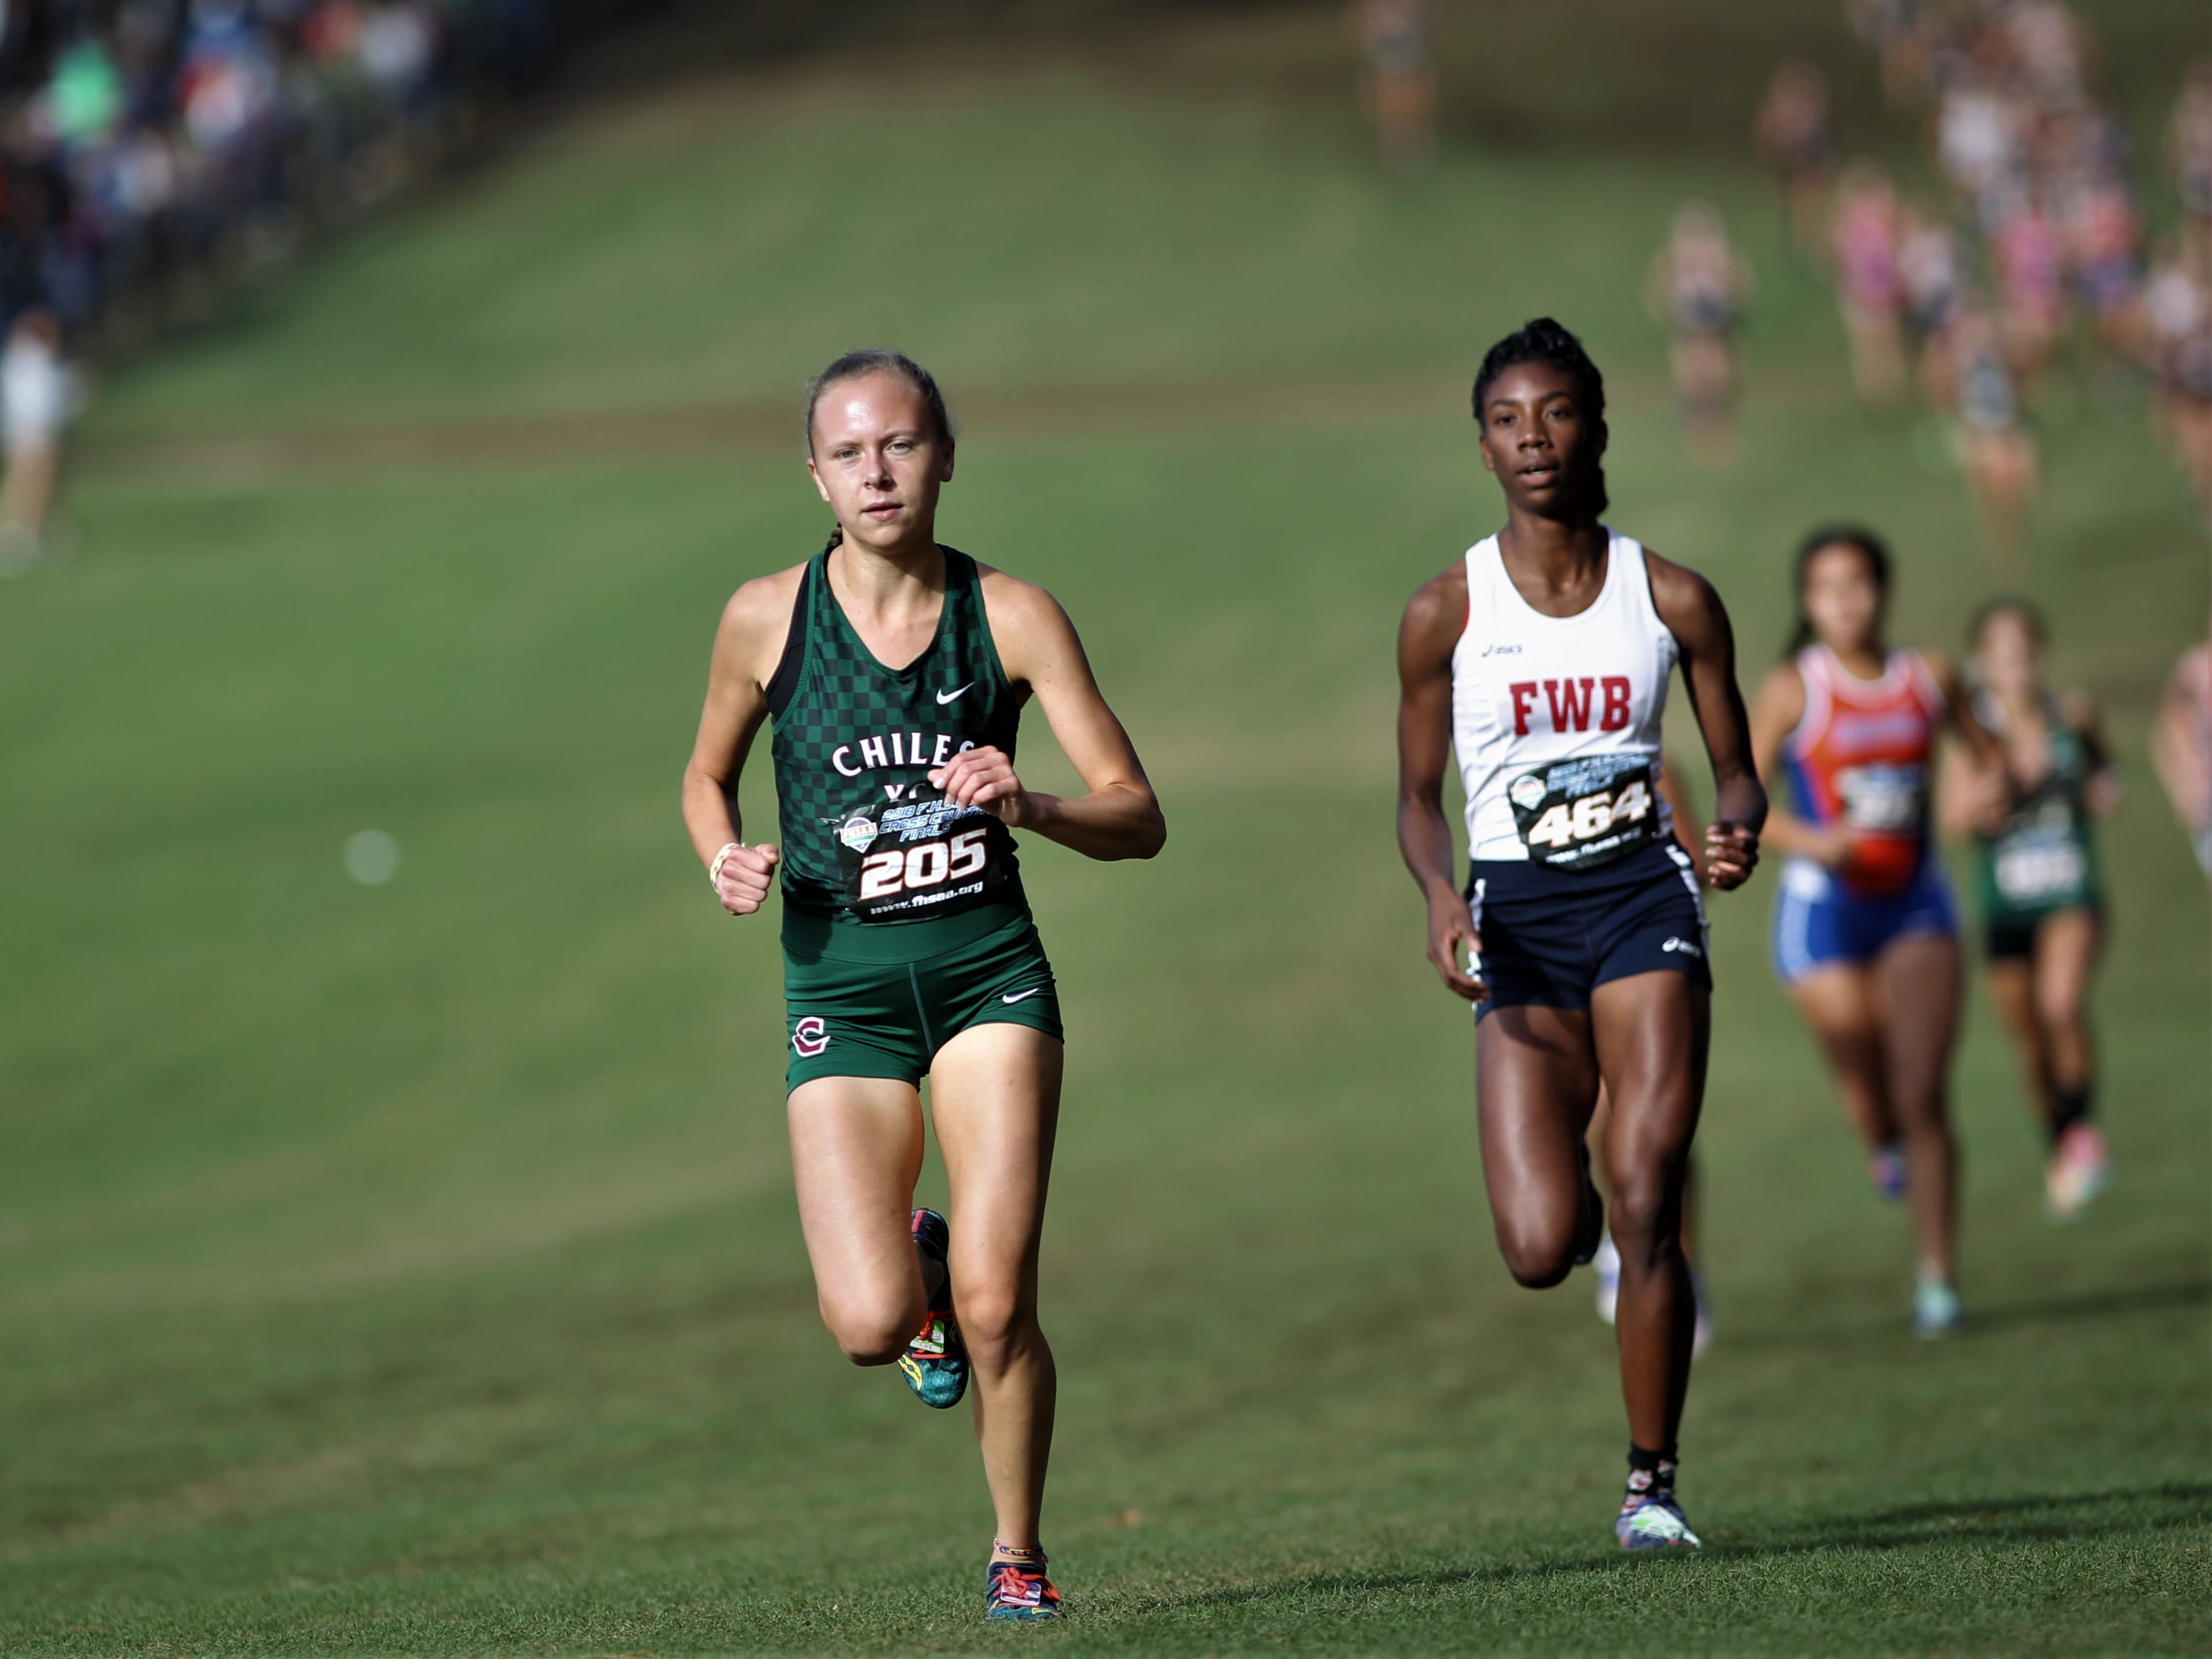 Chiles senior Abby Schrobilgen runs during the Class 3A race of the FHSAA Cross Country State Championships at Apalachee Regional Park on Saturday, Nov. 10, 2018.